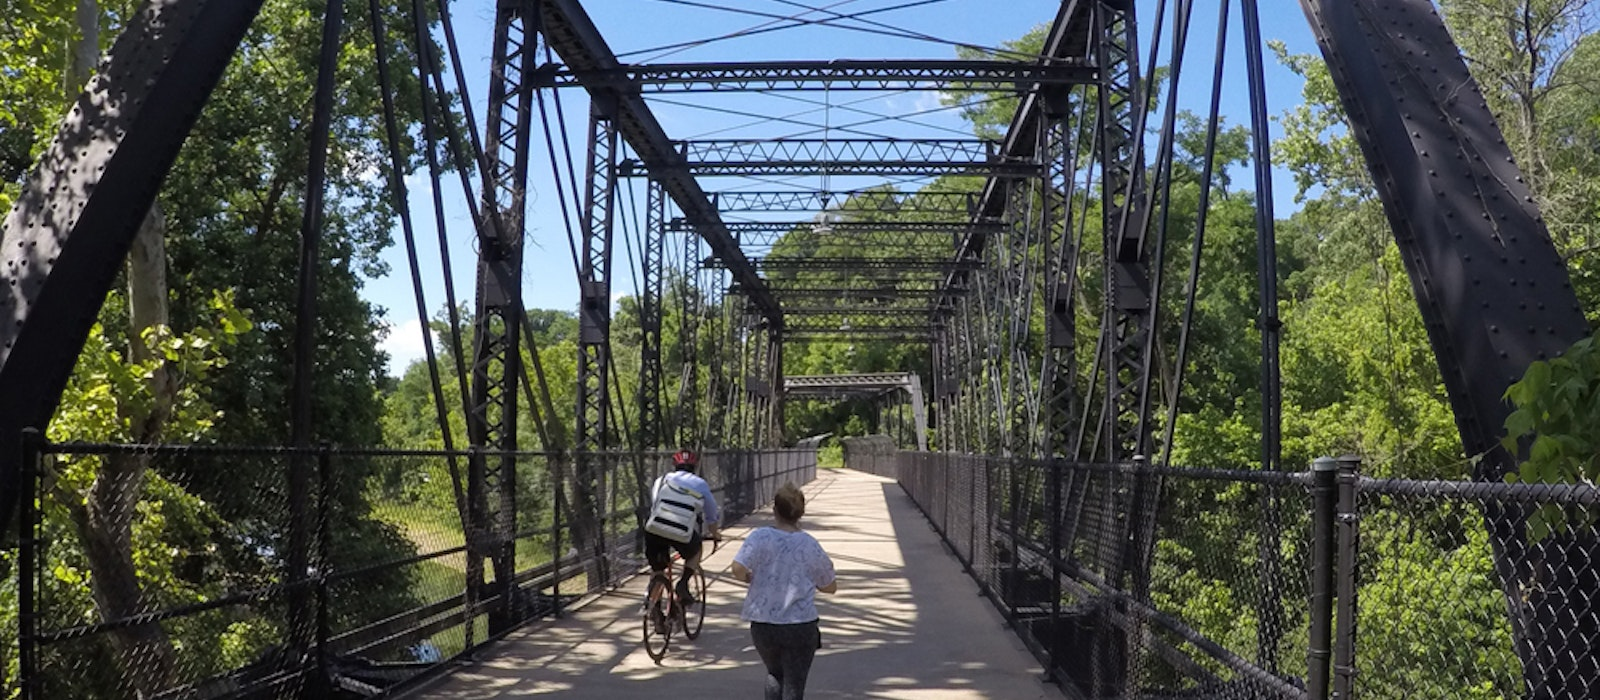 The new coast-to-coast bike route will begin on the Capital Crescent Trail in Washington, D.C.